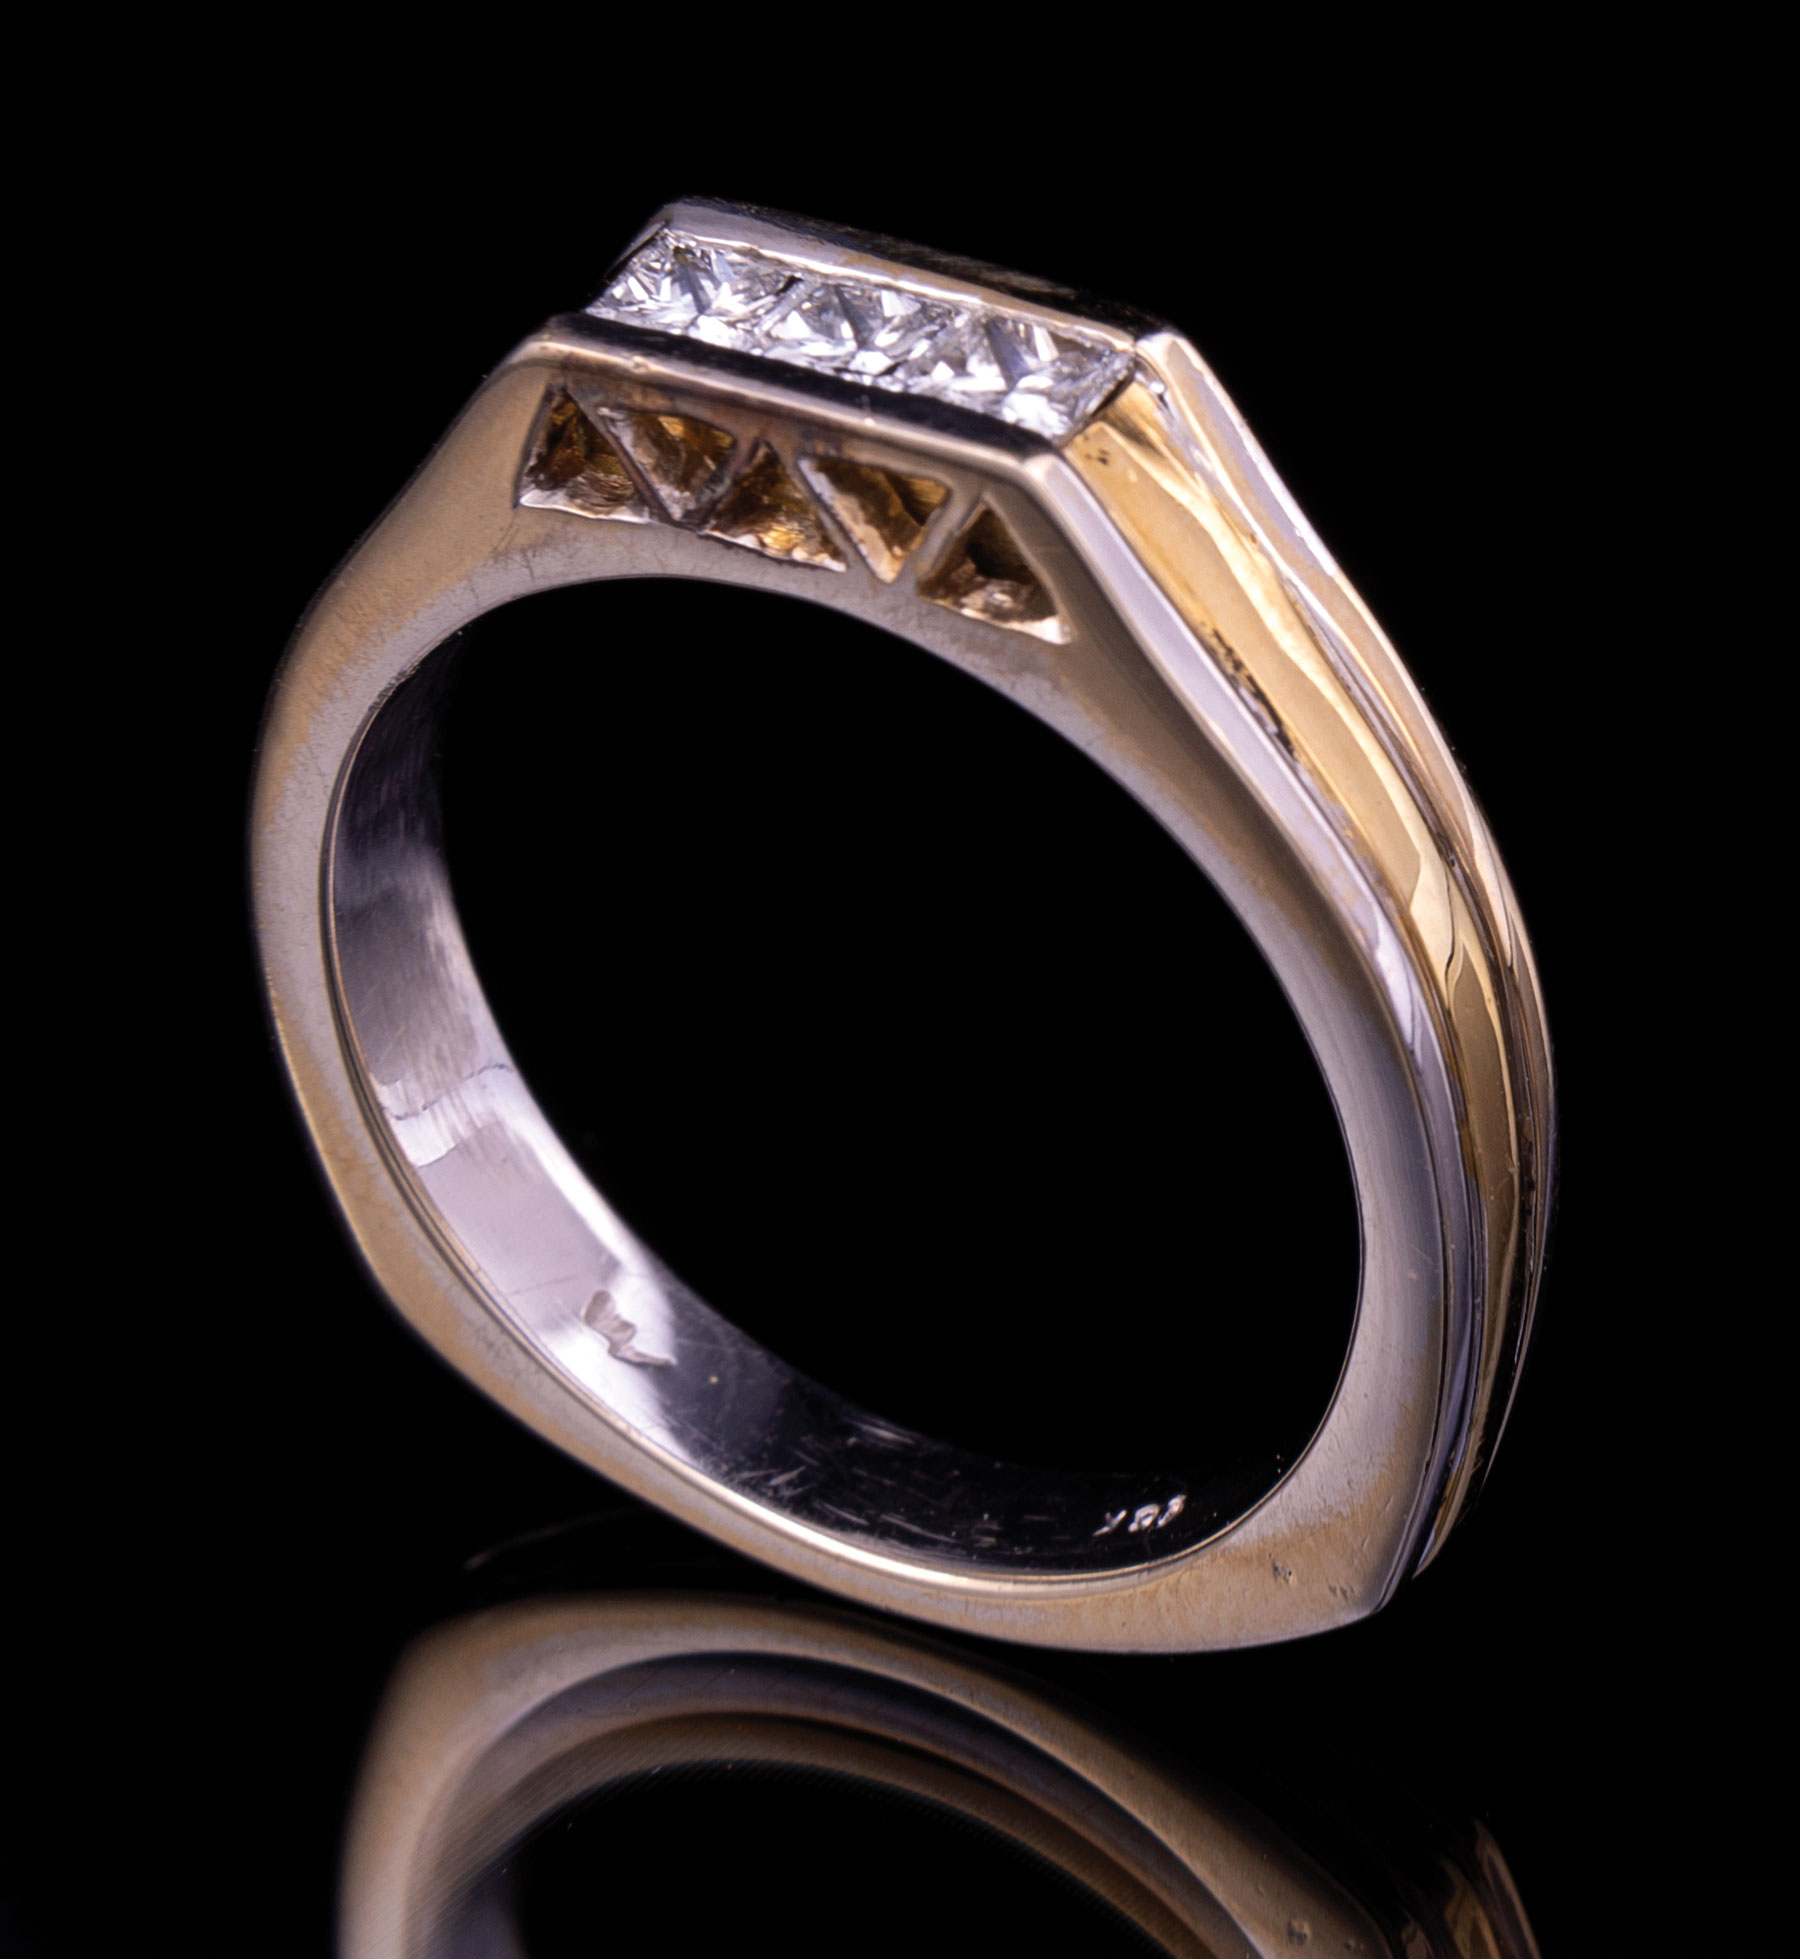 Lot 607 - 18 kt. Yellow and White Gold and Diamond Man's Ring , channel set with 3 princess-cut diamonds,